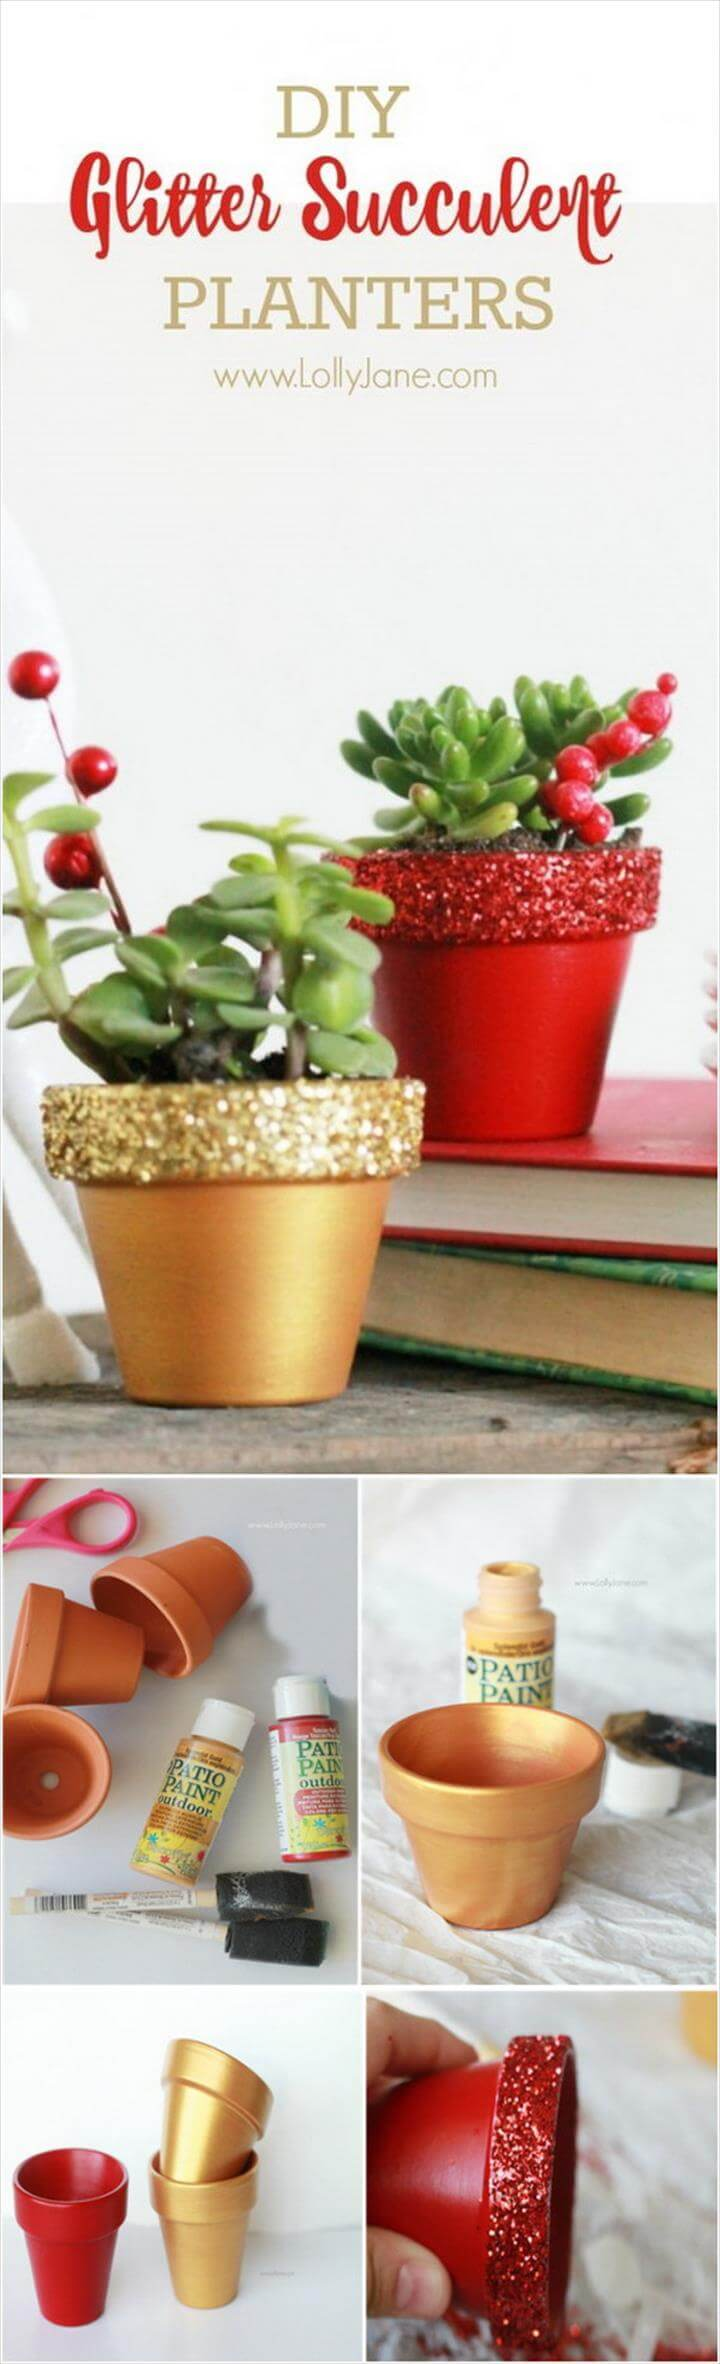 DIY Glitter Succulent PlantersHandmade Christmas Gifts, Holiday Decor, Gold Christmas Decorations, Christmas Holidays, Christmas Crafts, Christmas Favors, Christmas Home, Fall Decor, Merry Christmas,Glitter Top, Handmade Christmas Gifts, Painted Pots, Succulent Planters, Succulents, Diy Gifts, Great Gifts, Bliss, Christmas Decorations,